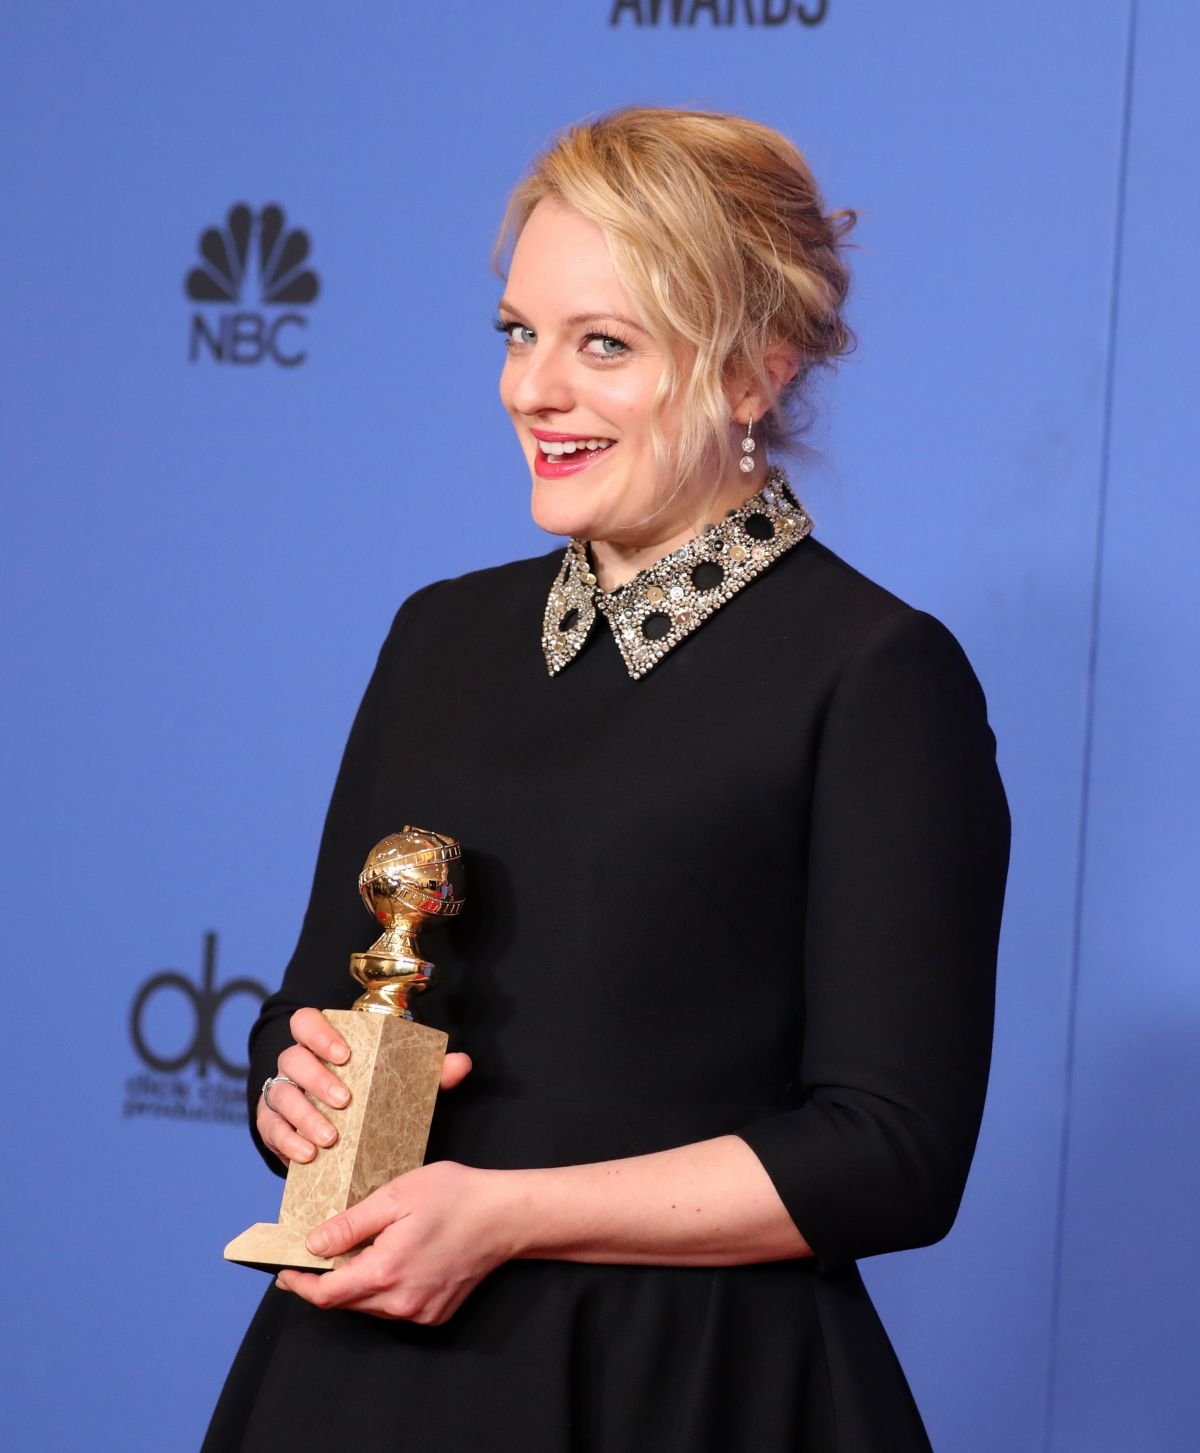 HD Photos of Elisabeth Moss At 75Th Annual Golden Globe Awards In Beverly Hills